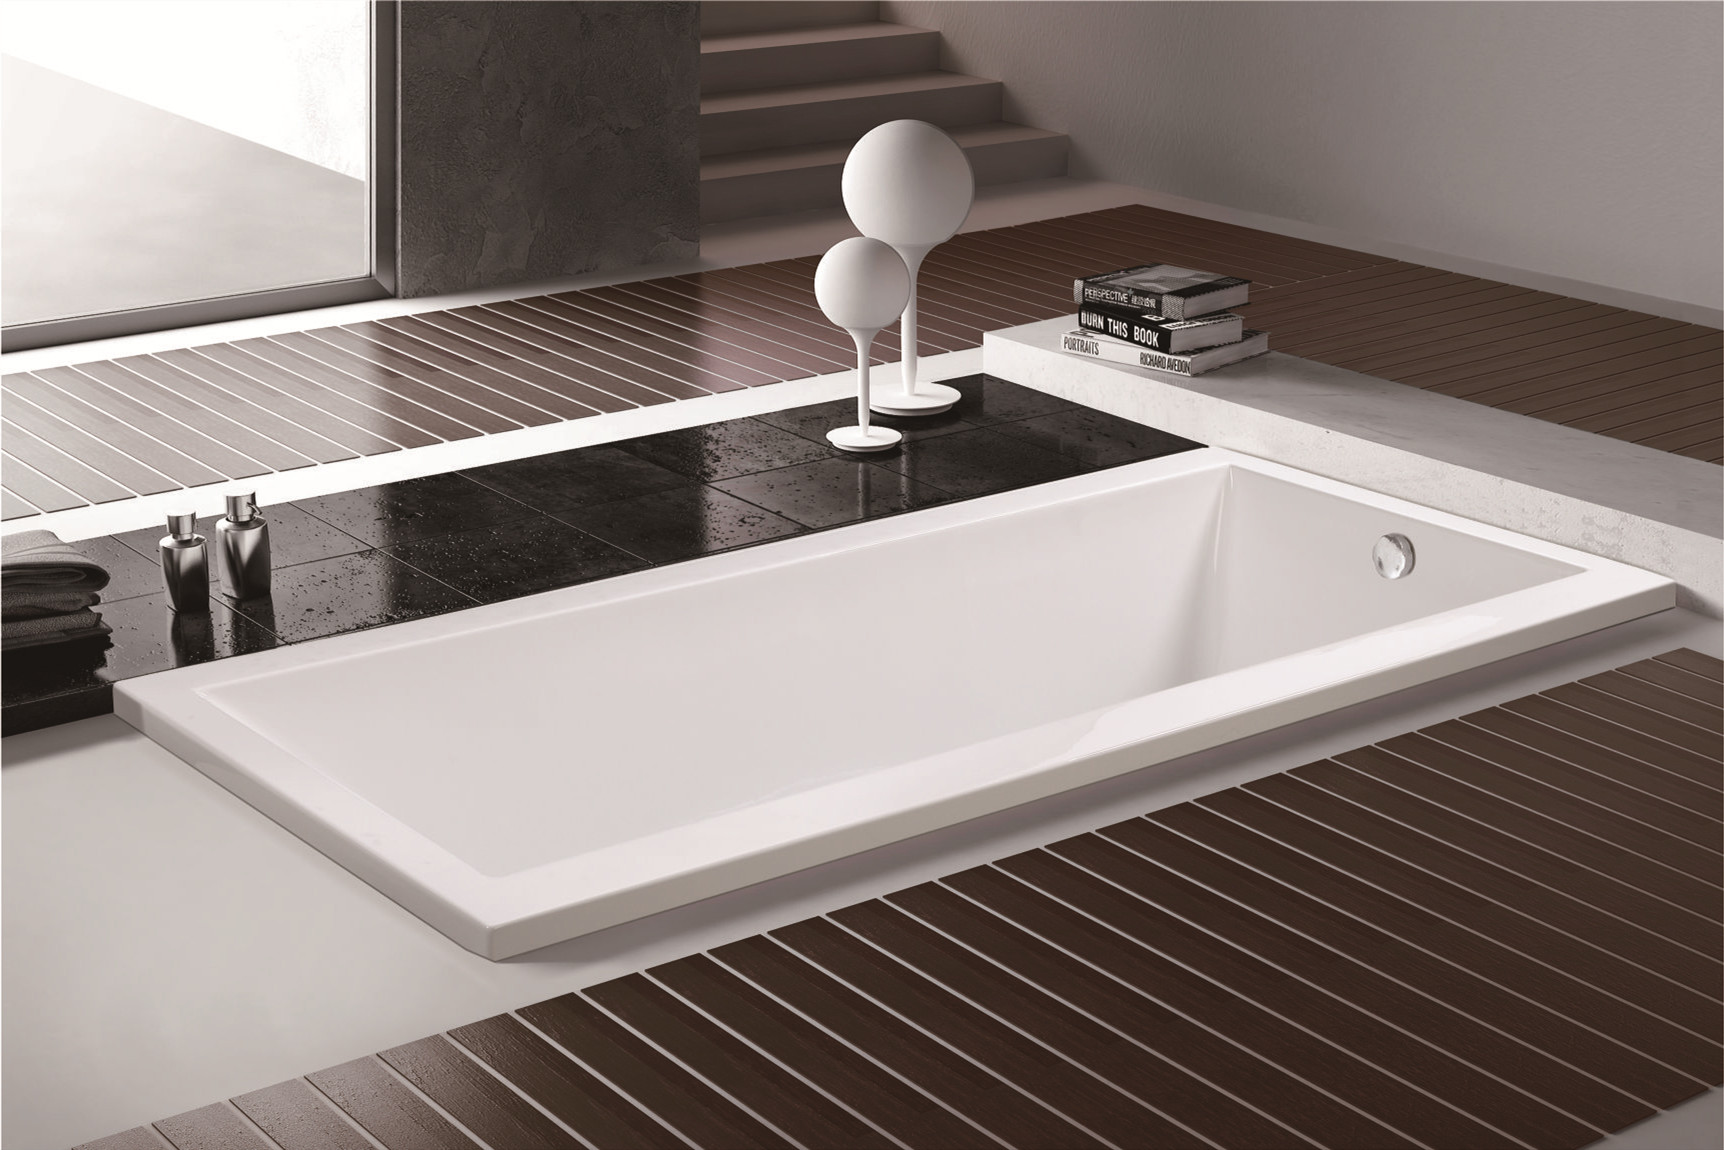 MEC070--Simple Design Economic White Acrylic Rectangle Drop-in Soaking Hot Tub.jpg